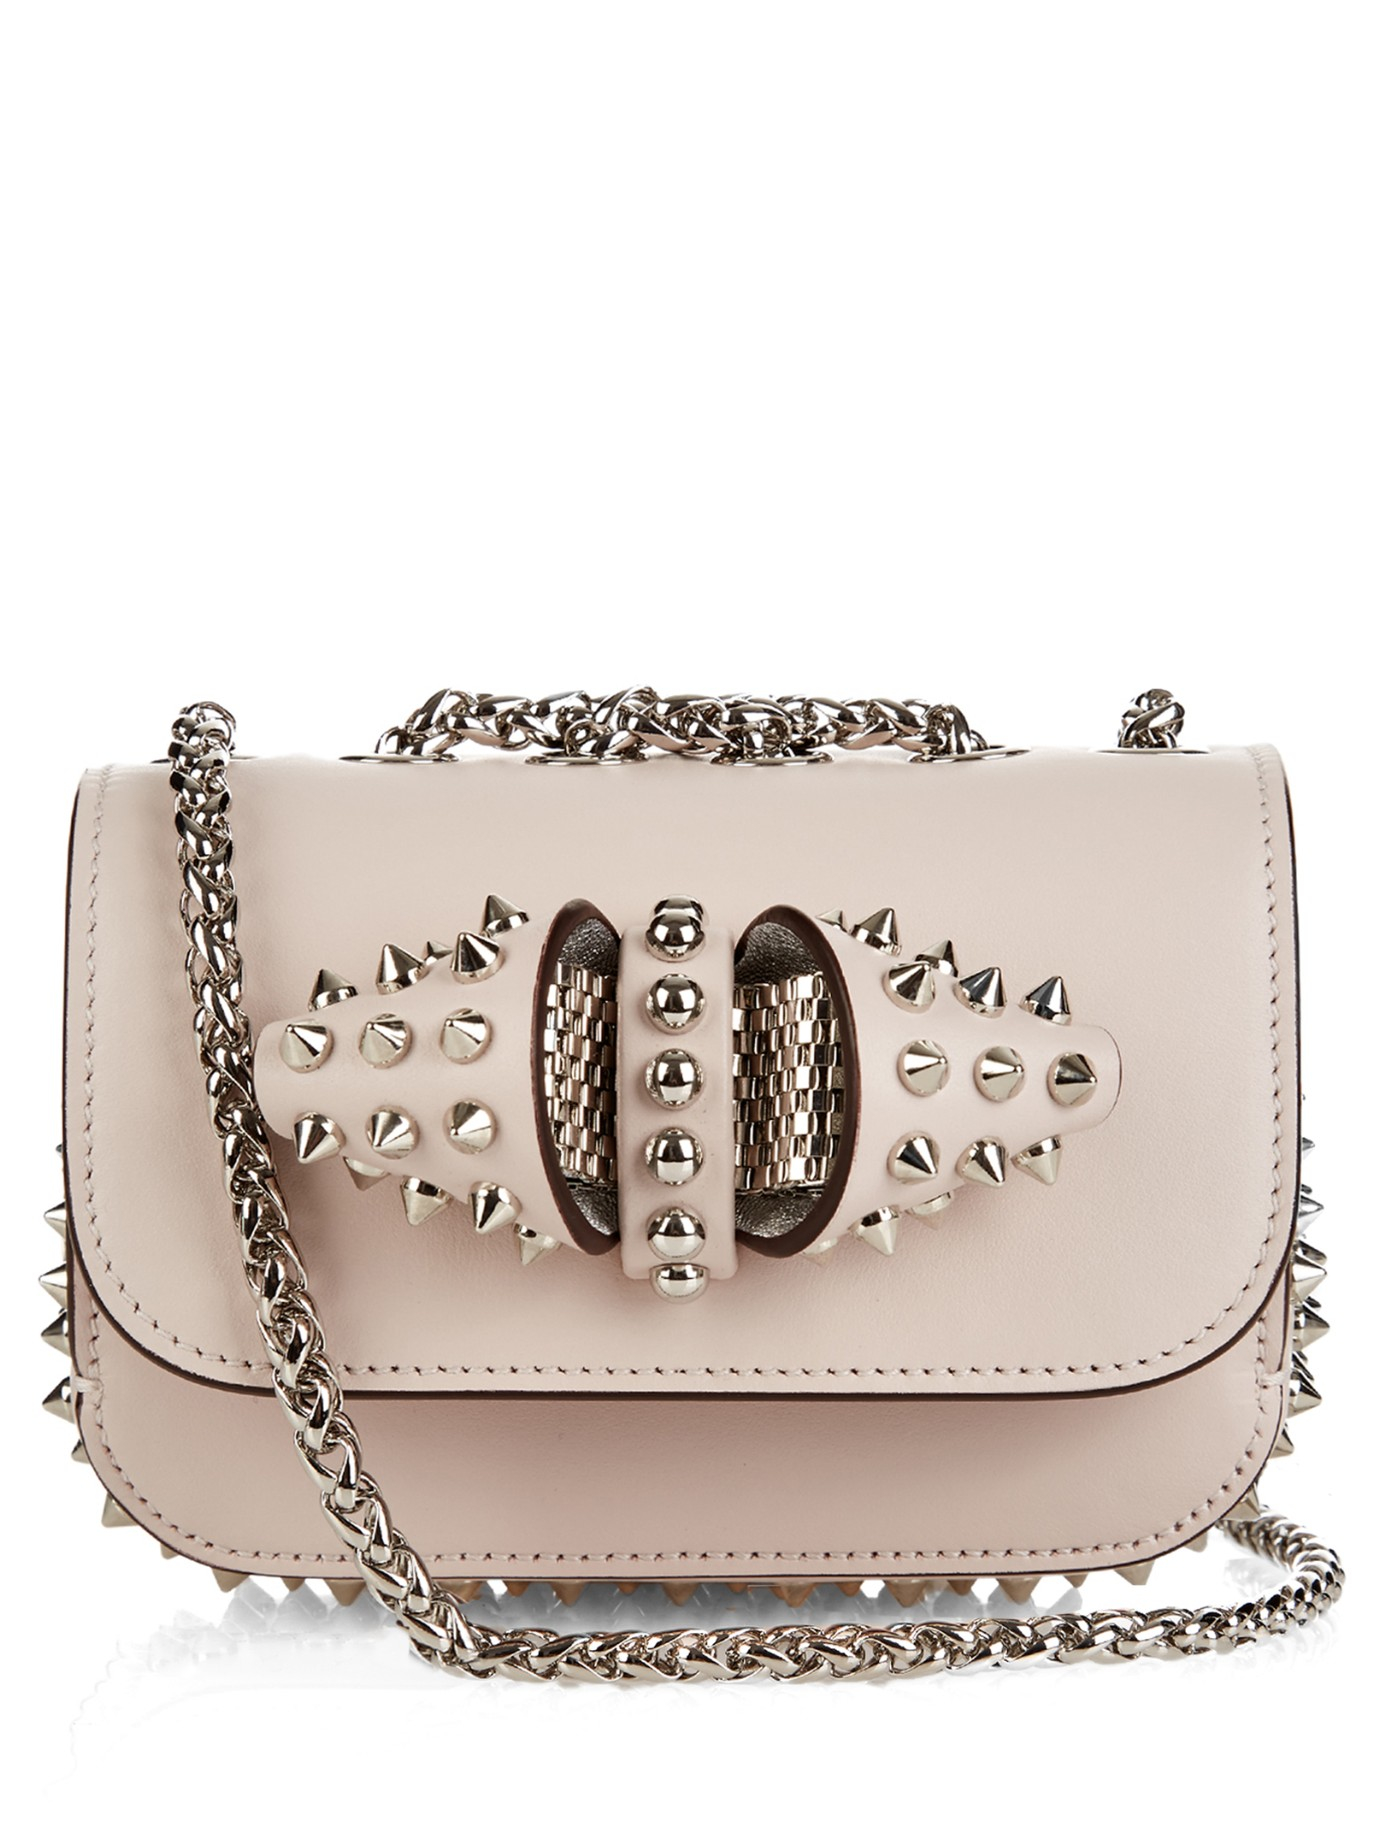 b4aa55b75af Christian Louboutin Sweety Charity Mini Shoulder Bag in Pink - Lyst